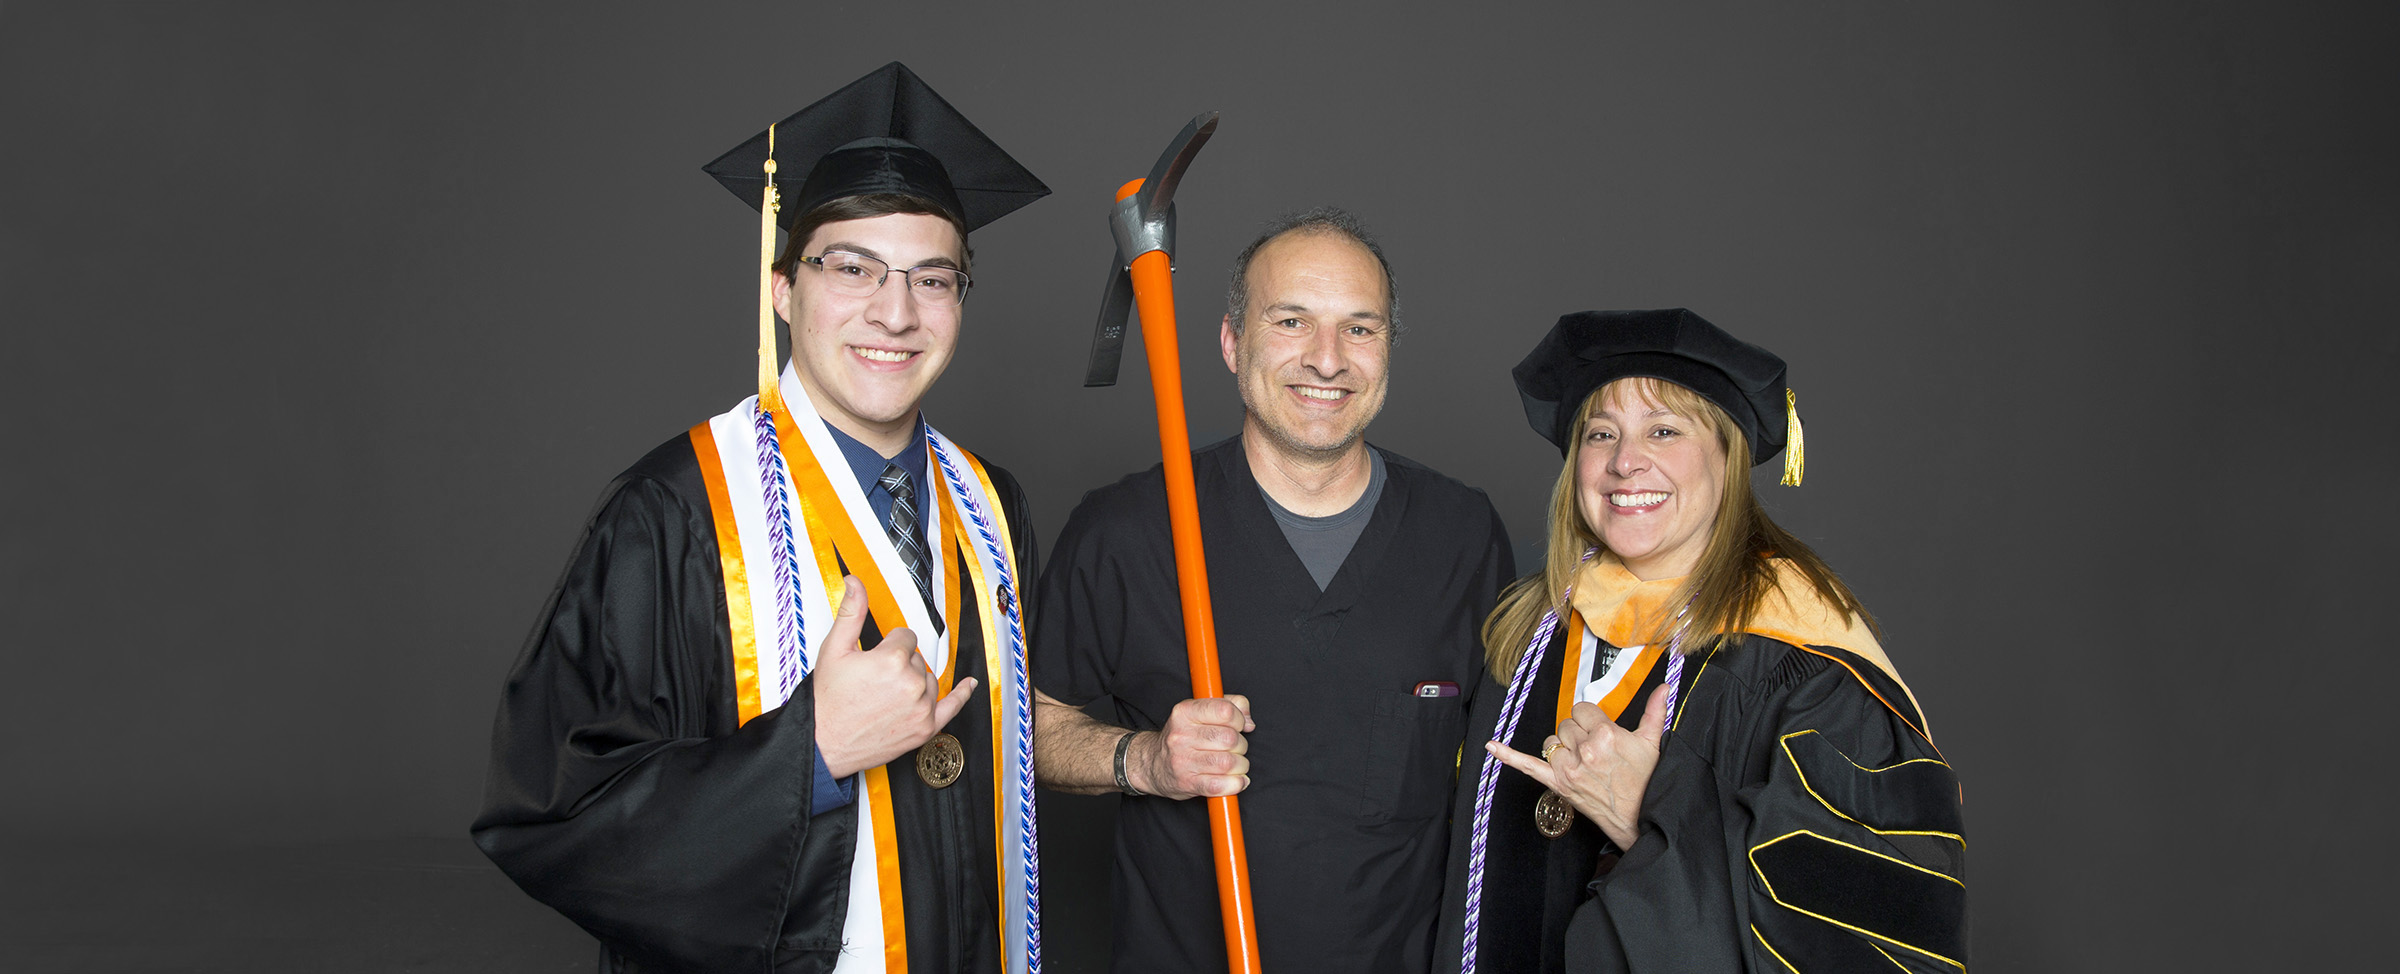 Noah Skory, left, and his parents John and Sondra Skory are all graduates from UTEP's School of Nursing. Photo: Ivan Pierre Aguirre / UTEP Communications